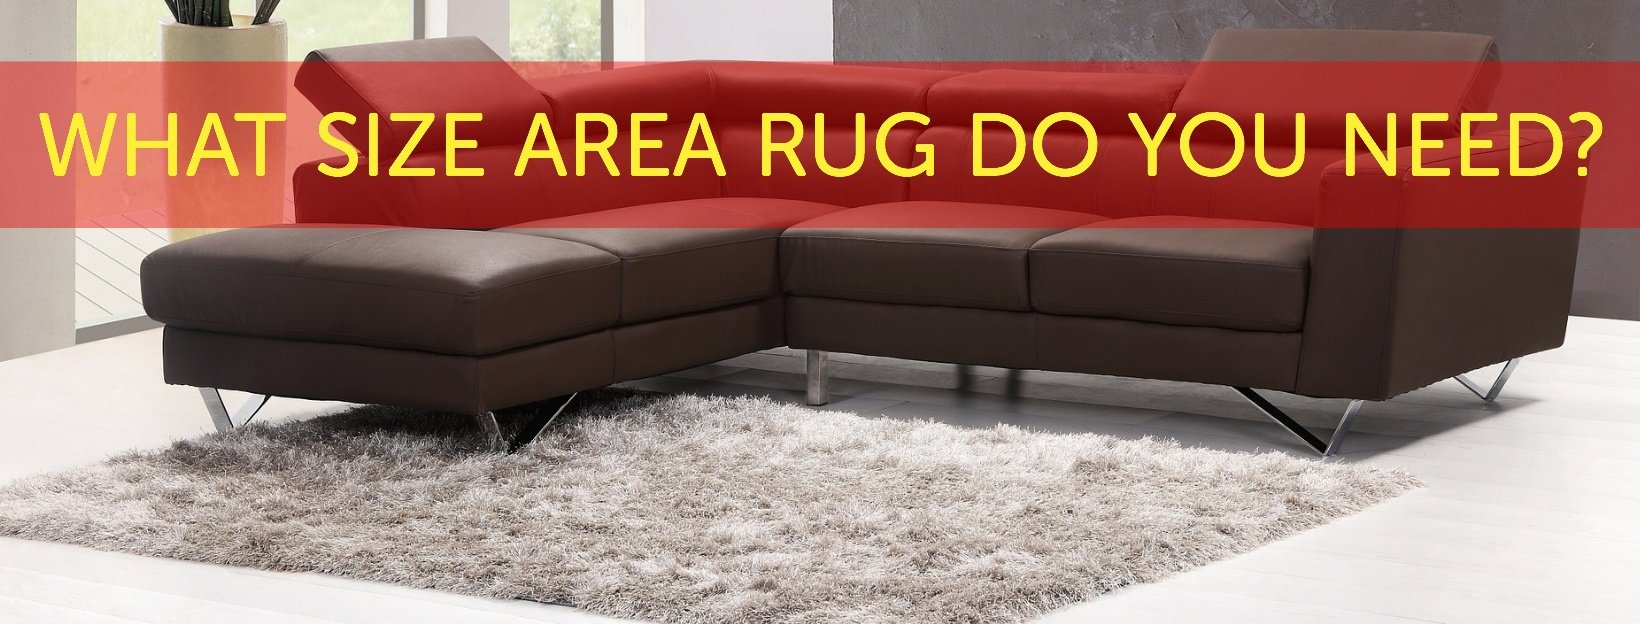 What Size Rug Do You Need? | Carpet Depot